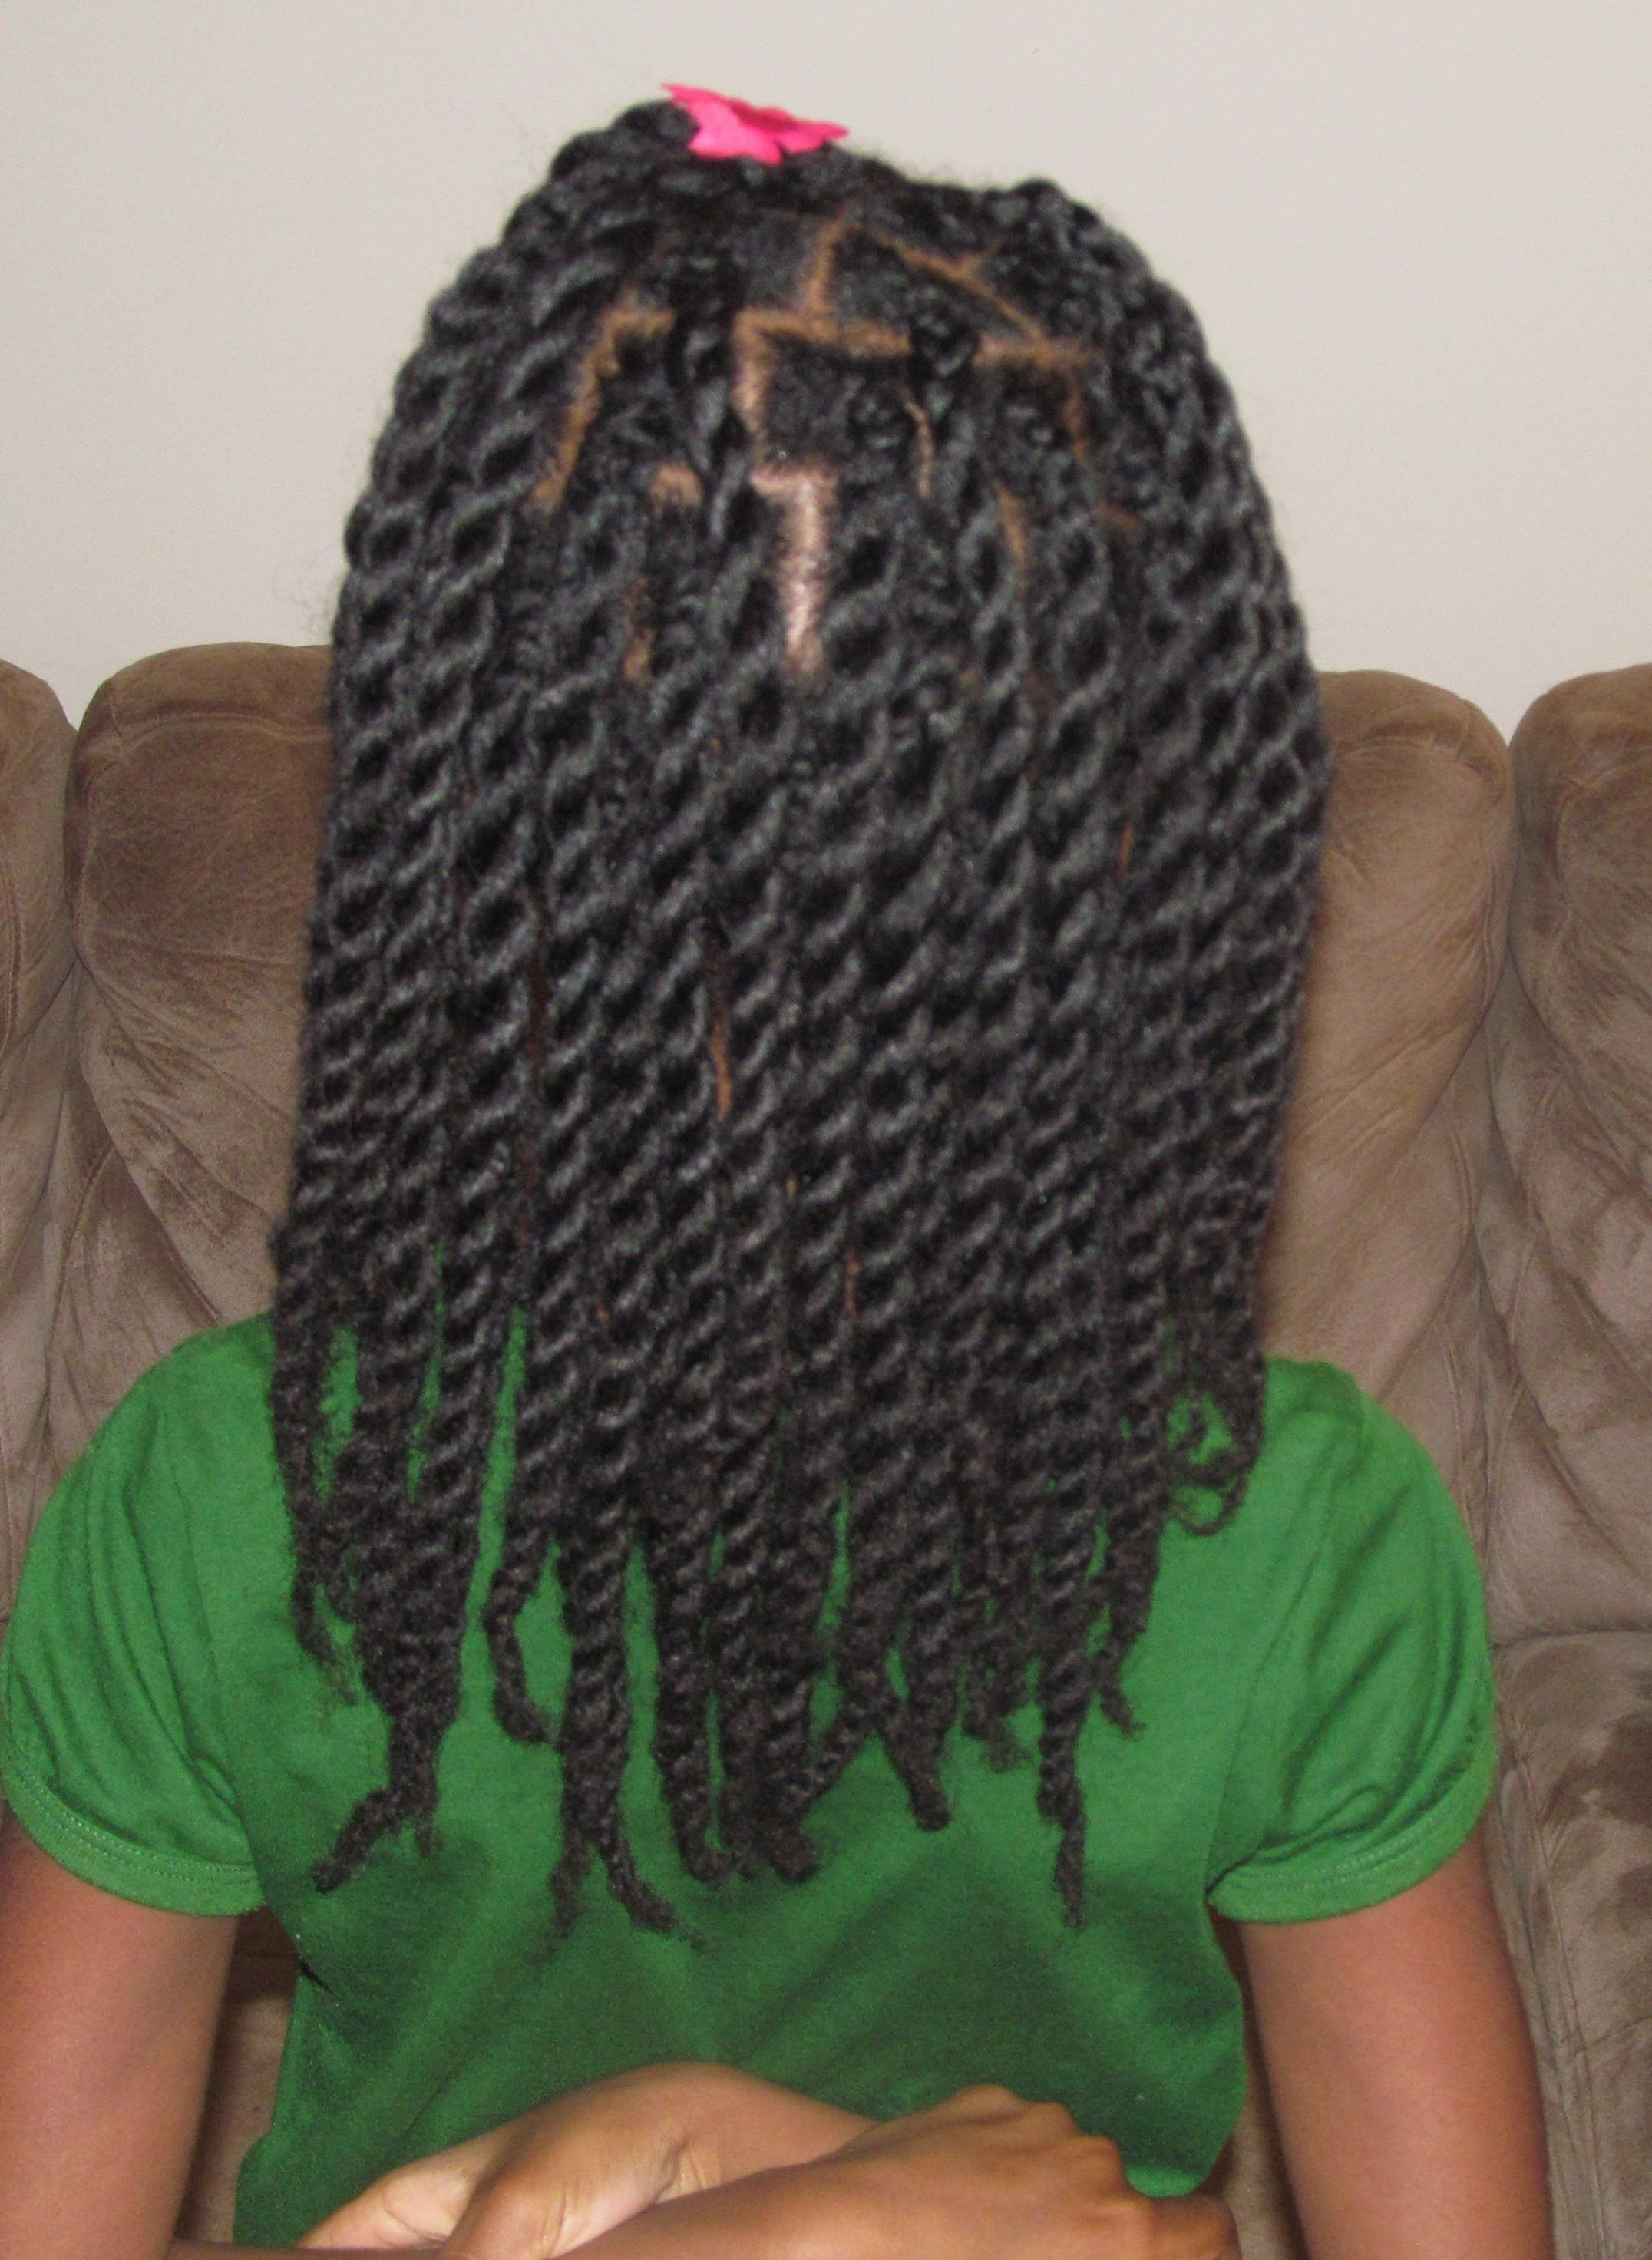 hair twists/rope twists on natural hair (without hair bands